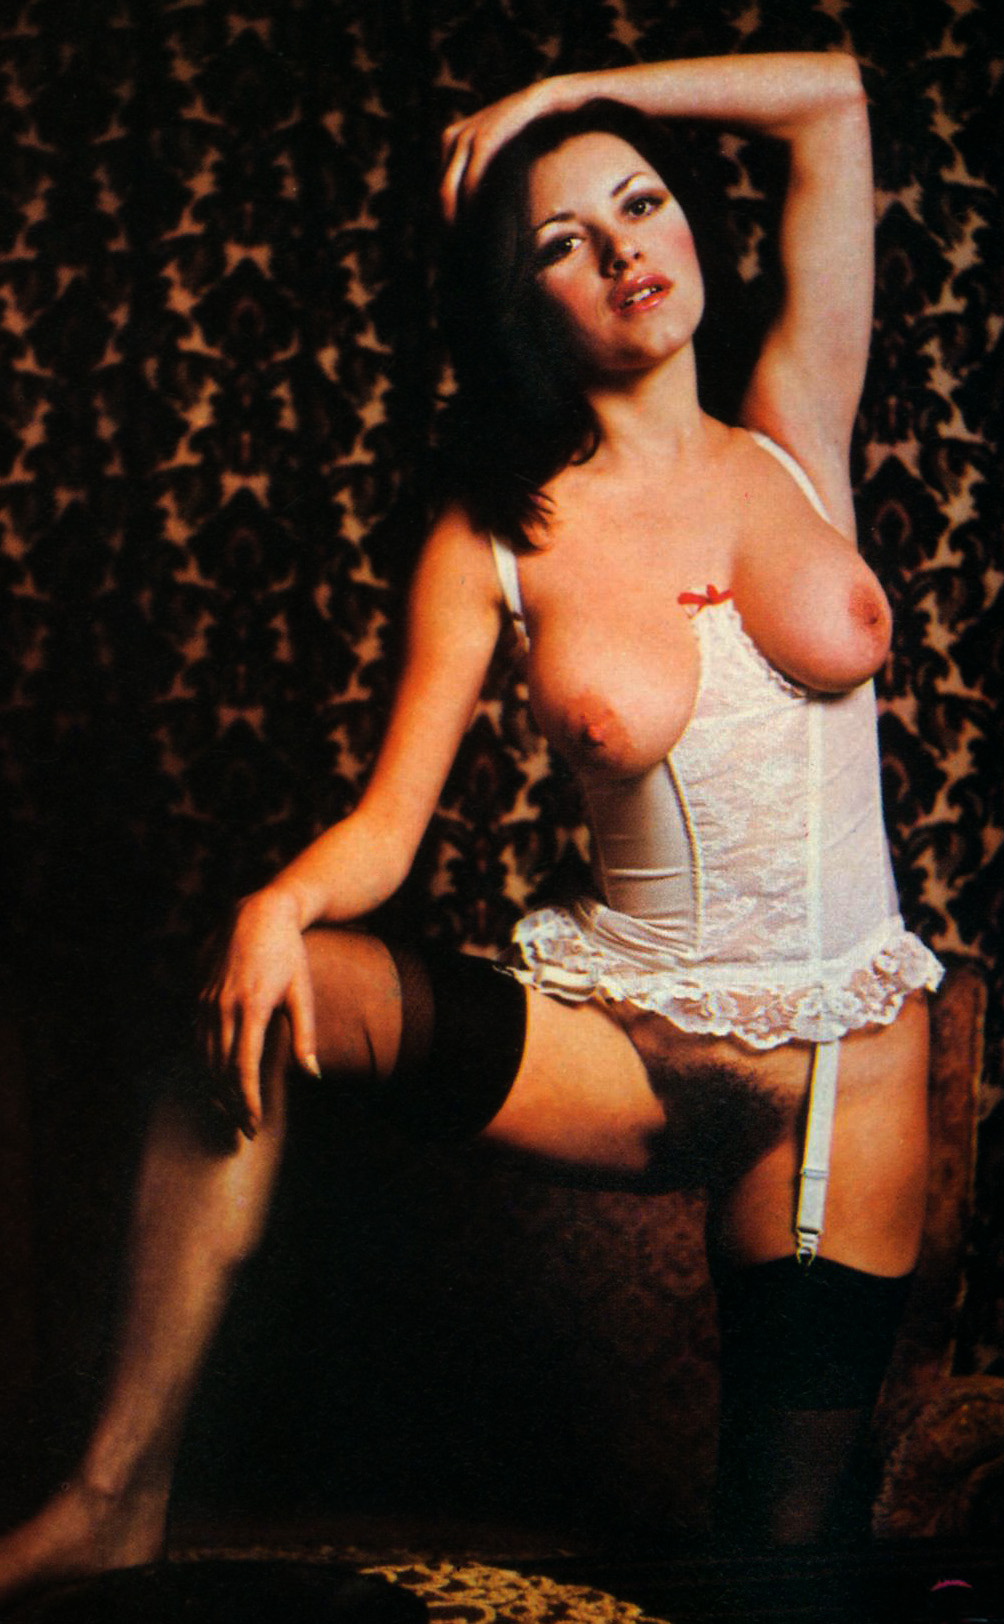 Hairy girl in vintage stockings and bustier, New QT magazine vol01.jpg